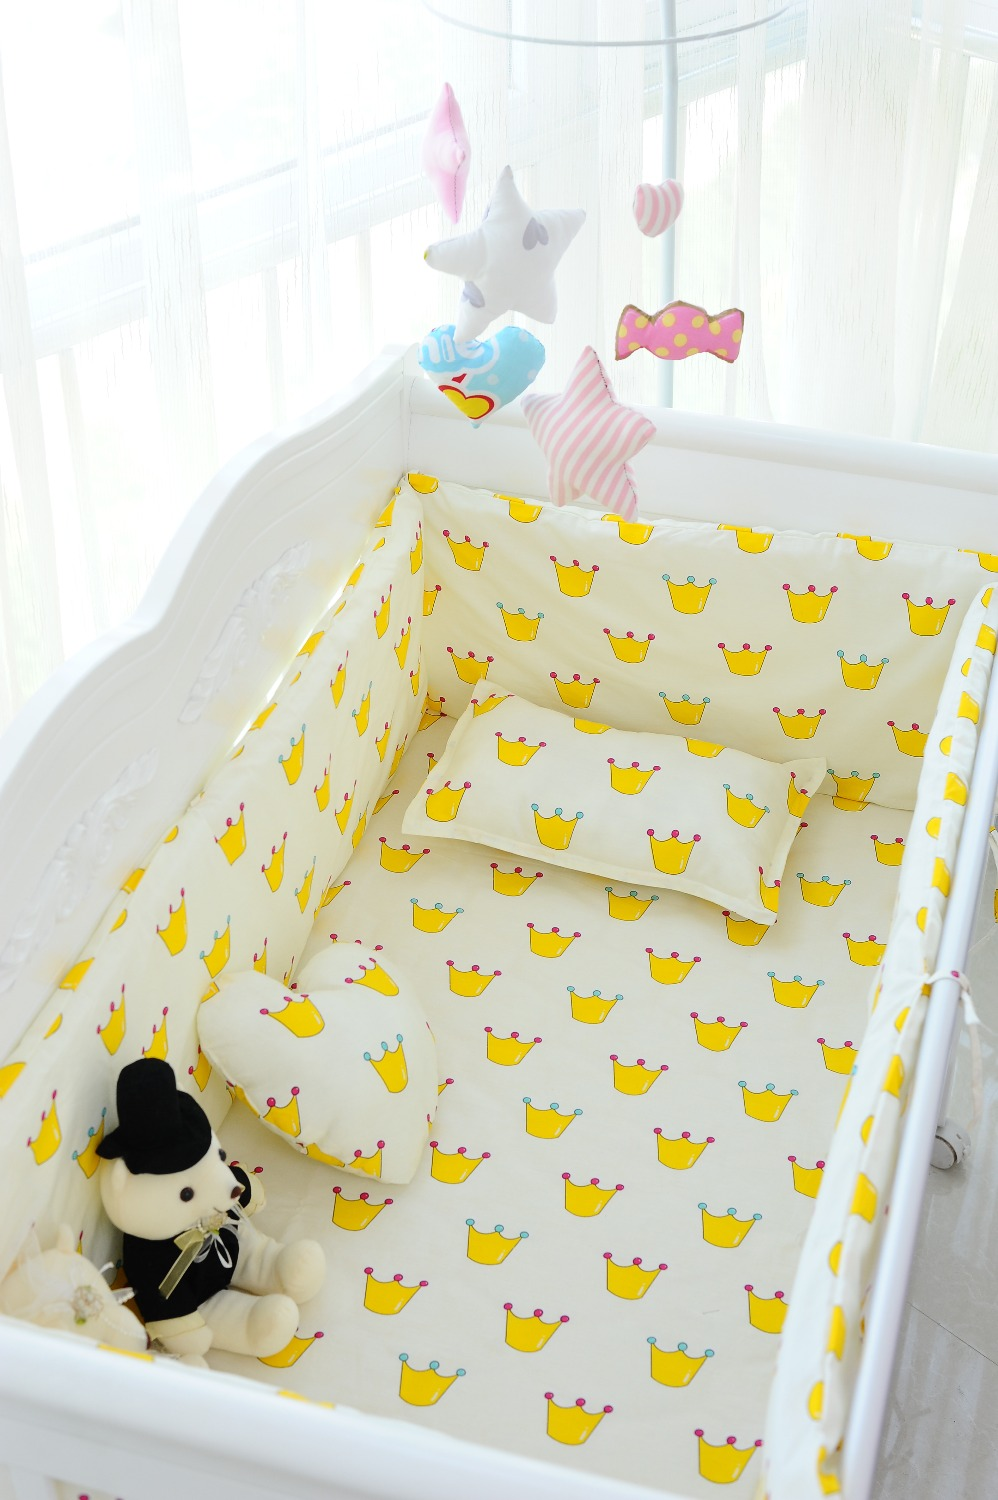 Promotion! 6PCS crib bumper Baby Bed Set Crib Bedding (bumpers+sheet+pillow cover) promotion 6pcs baby crib bedding set pieces bed around bumper bumper sheet pillow cover